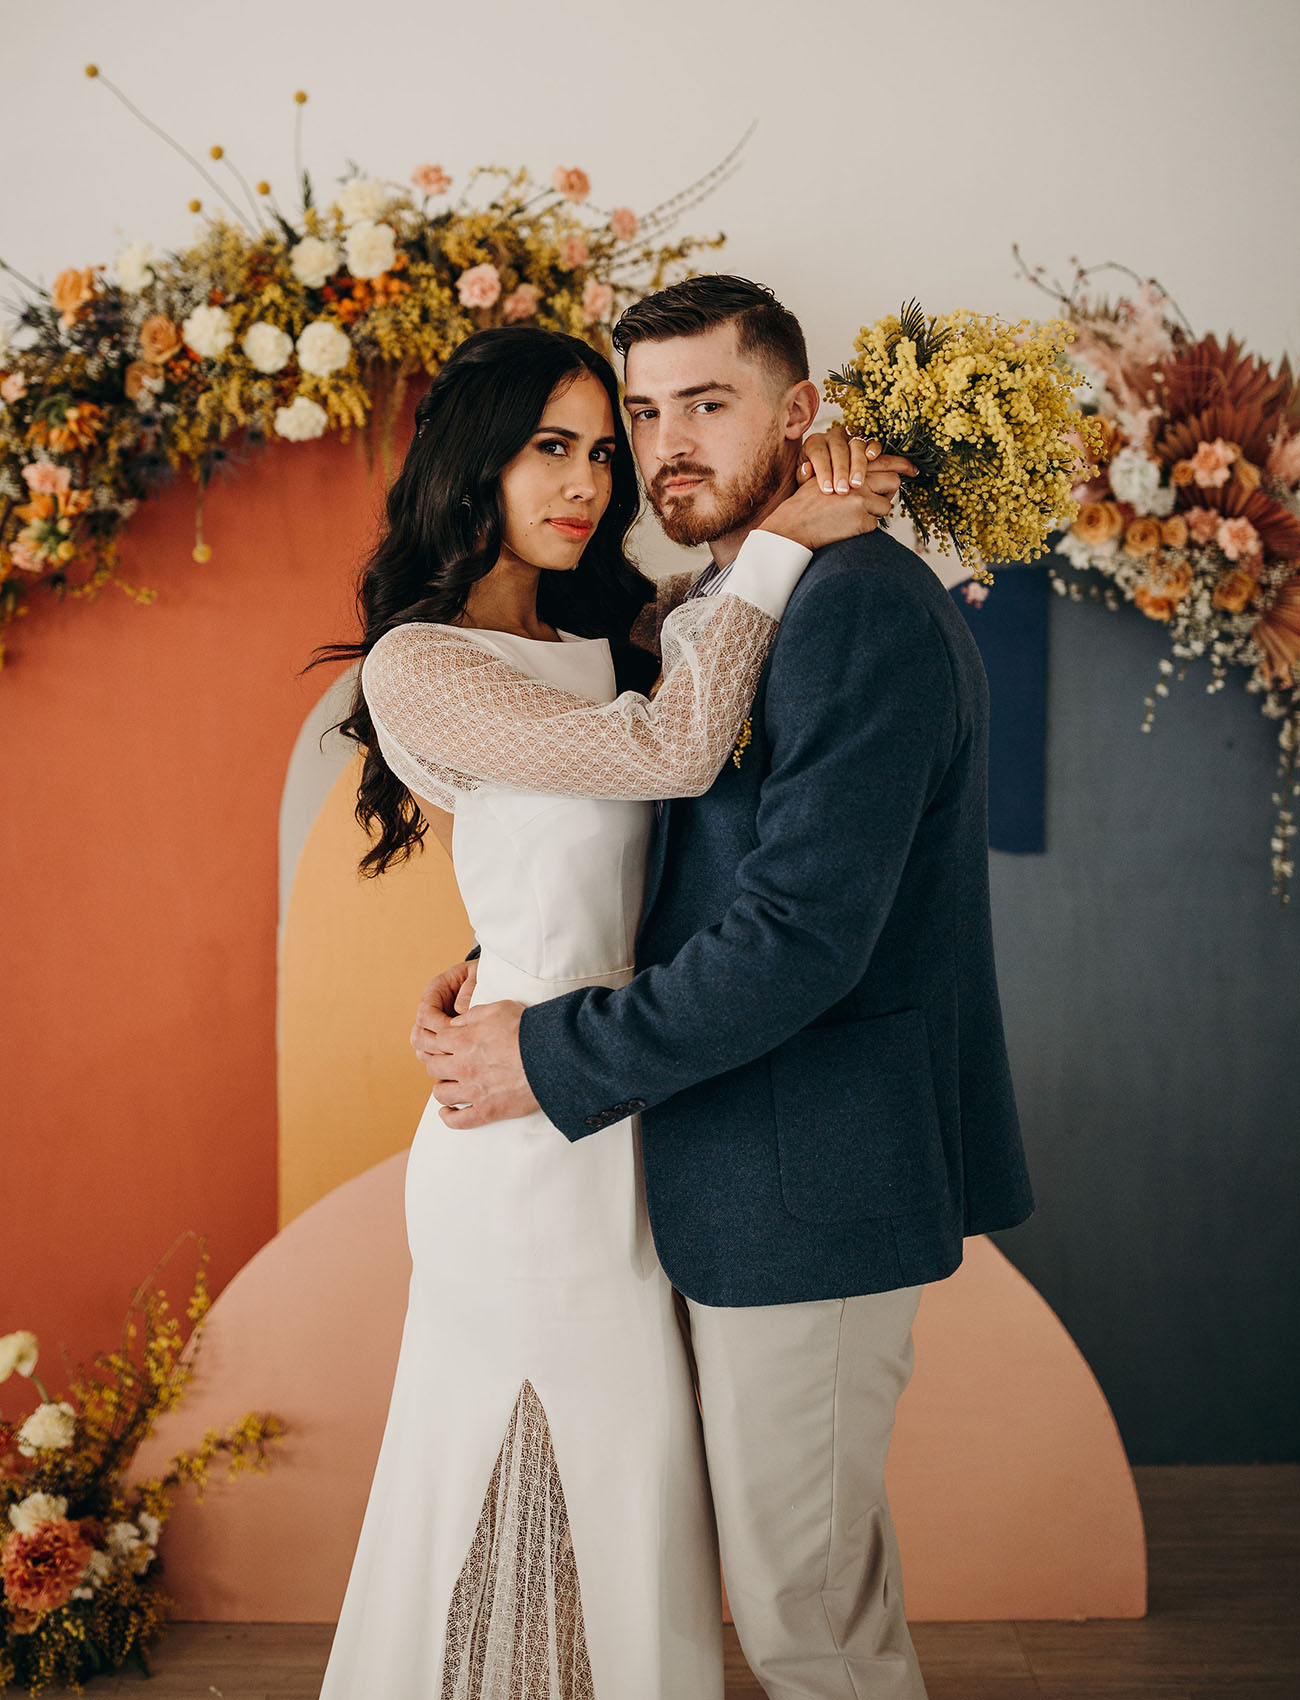 This wedding shoot was done in muted shades, with color blocking and some trendy touches